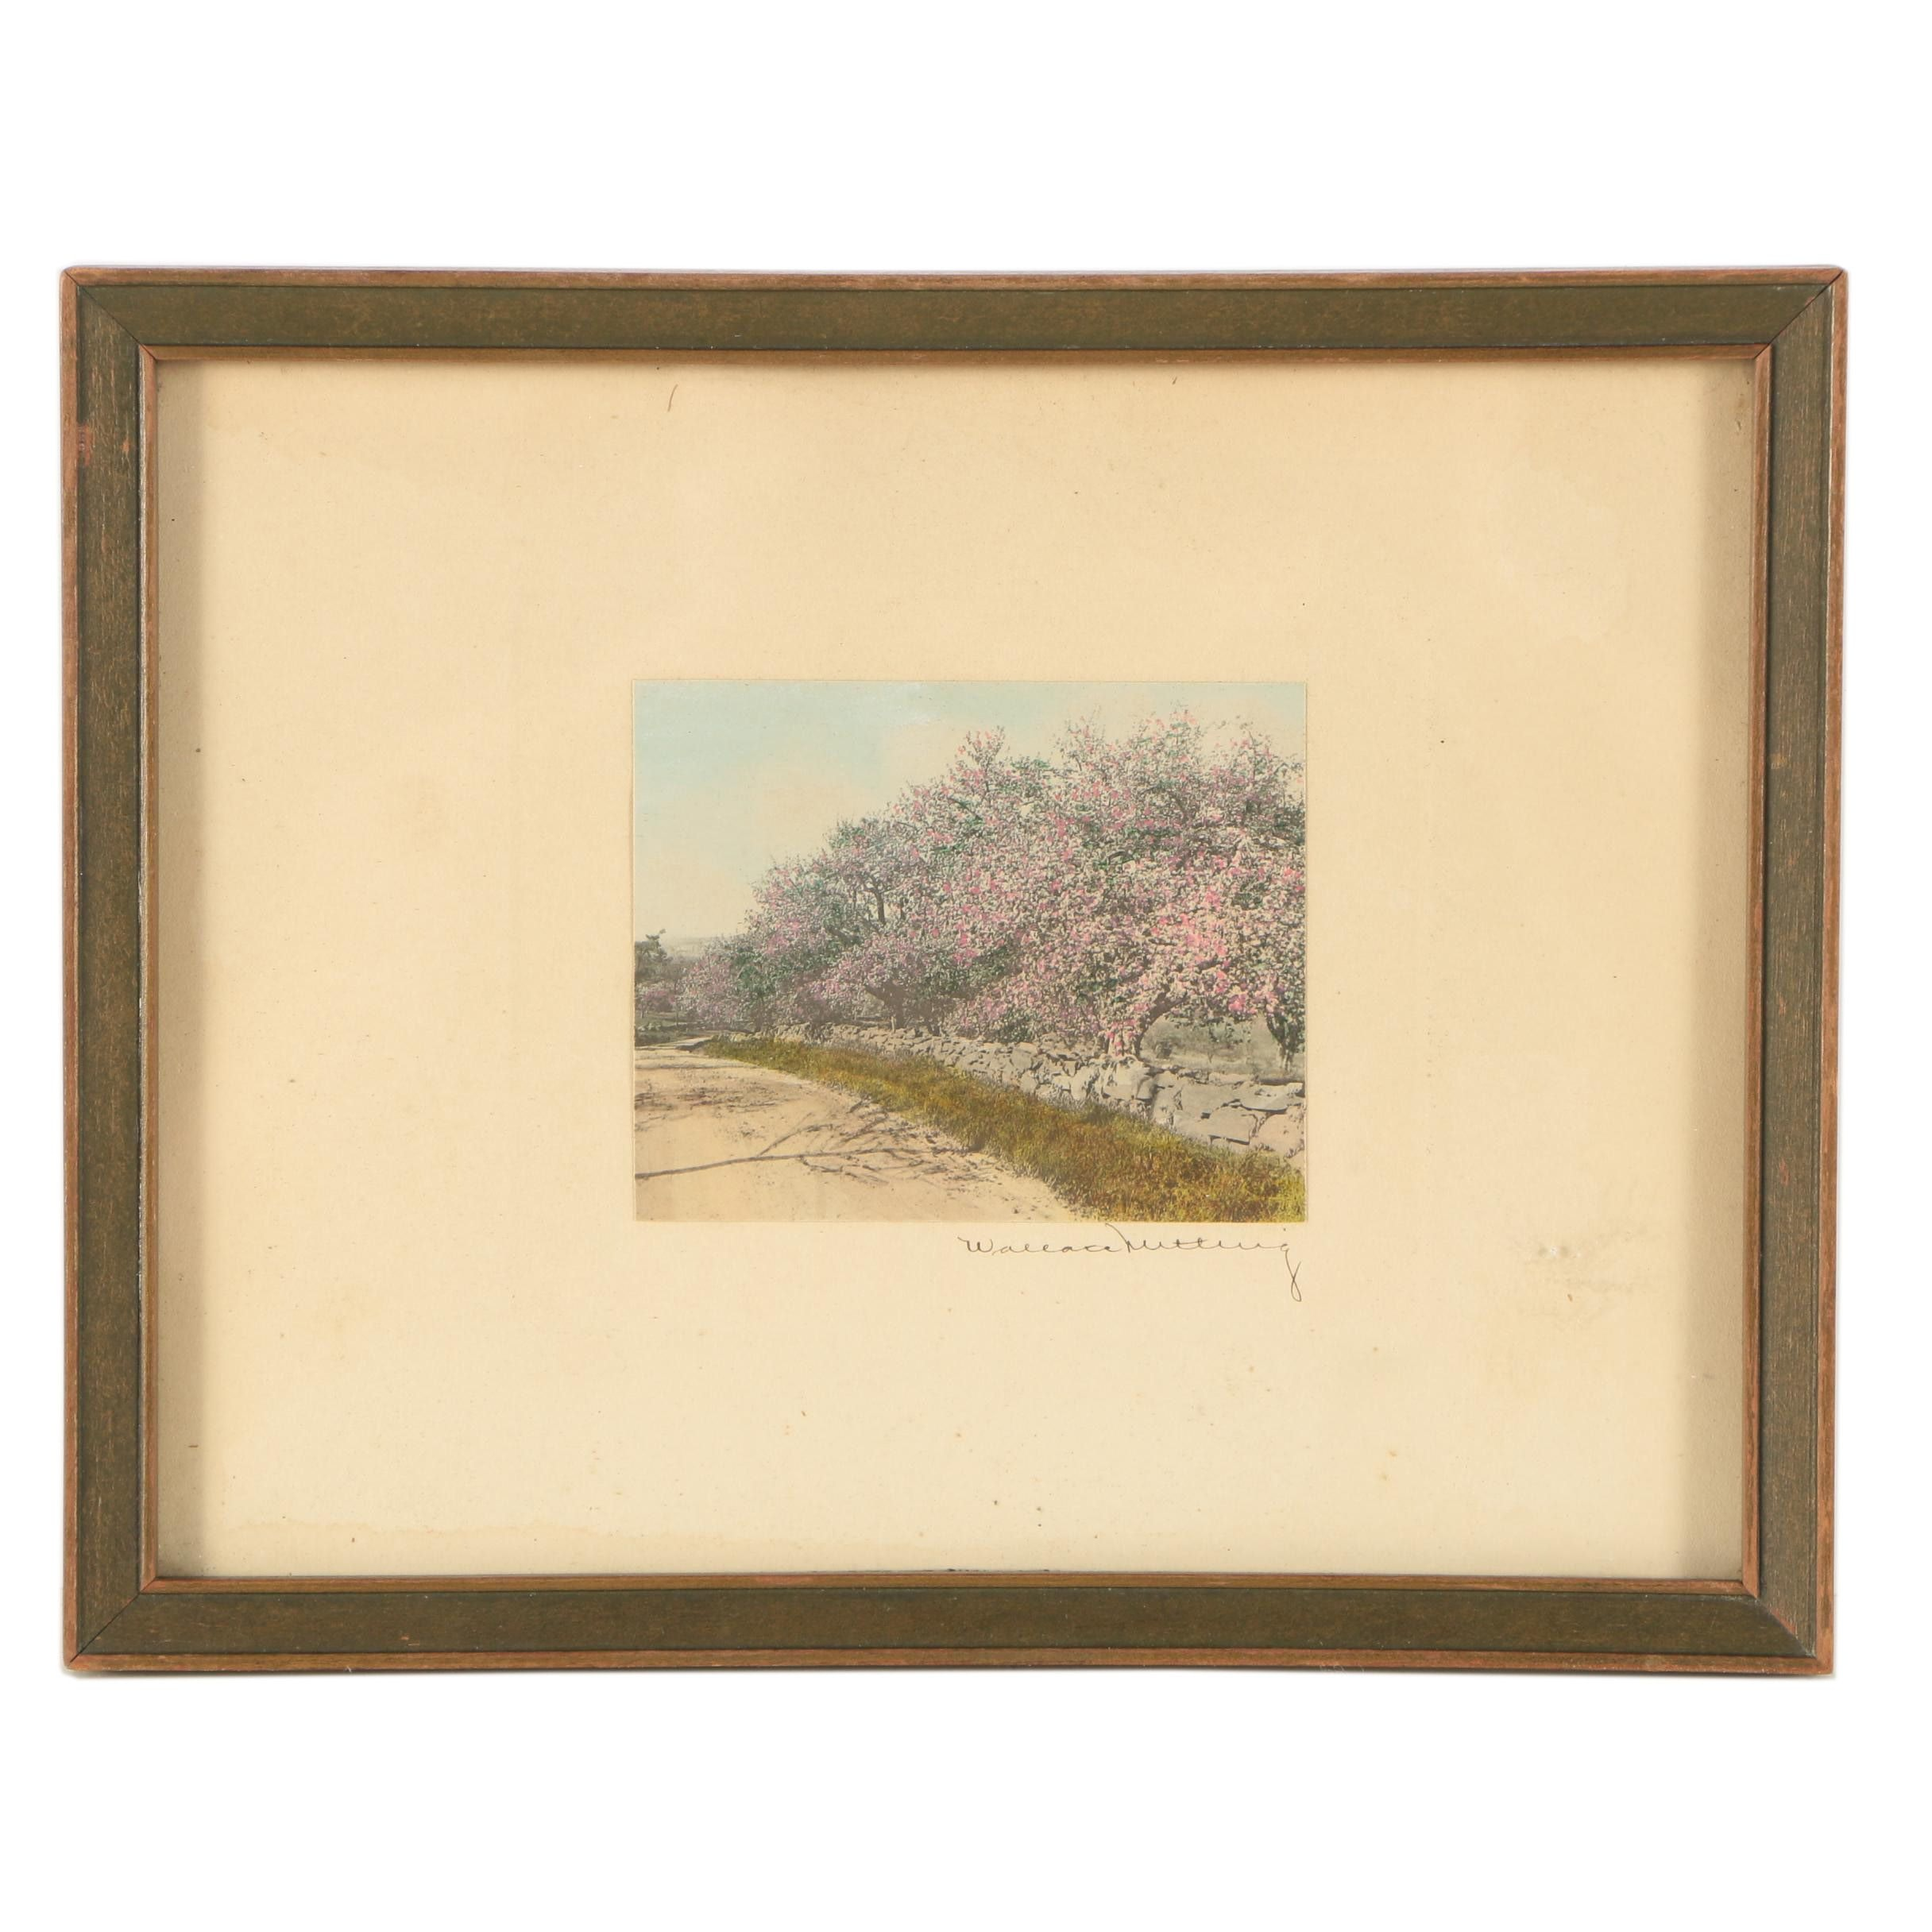 Wallace Nutting Hand-Colored Photograph of Cherry Blossoms